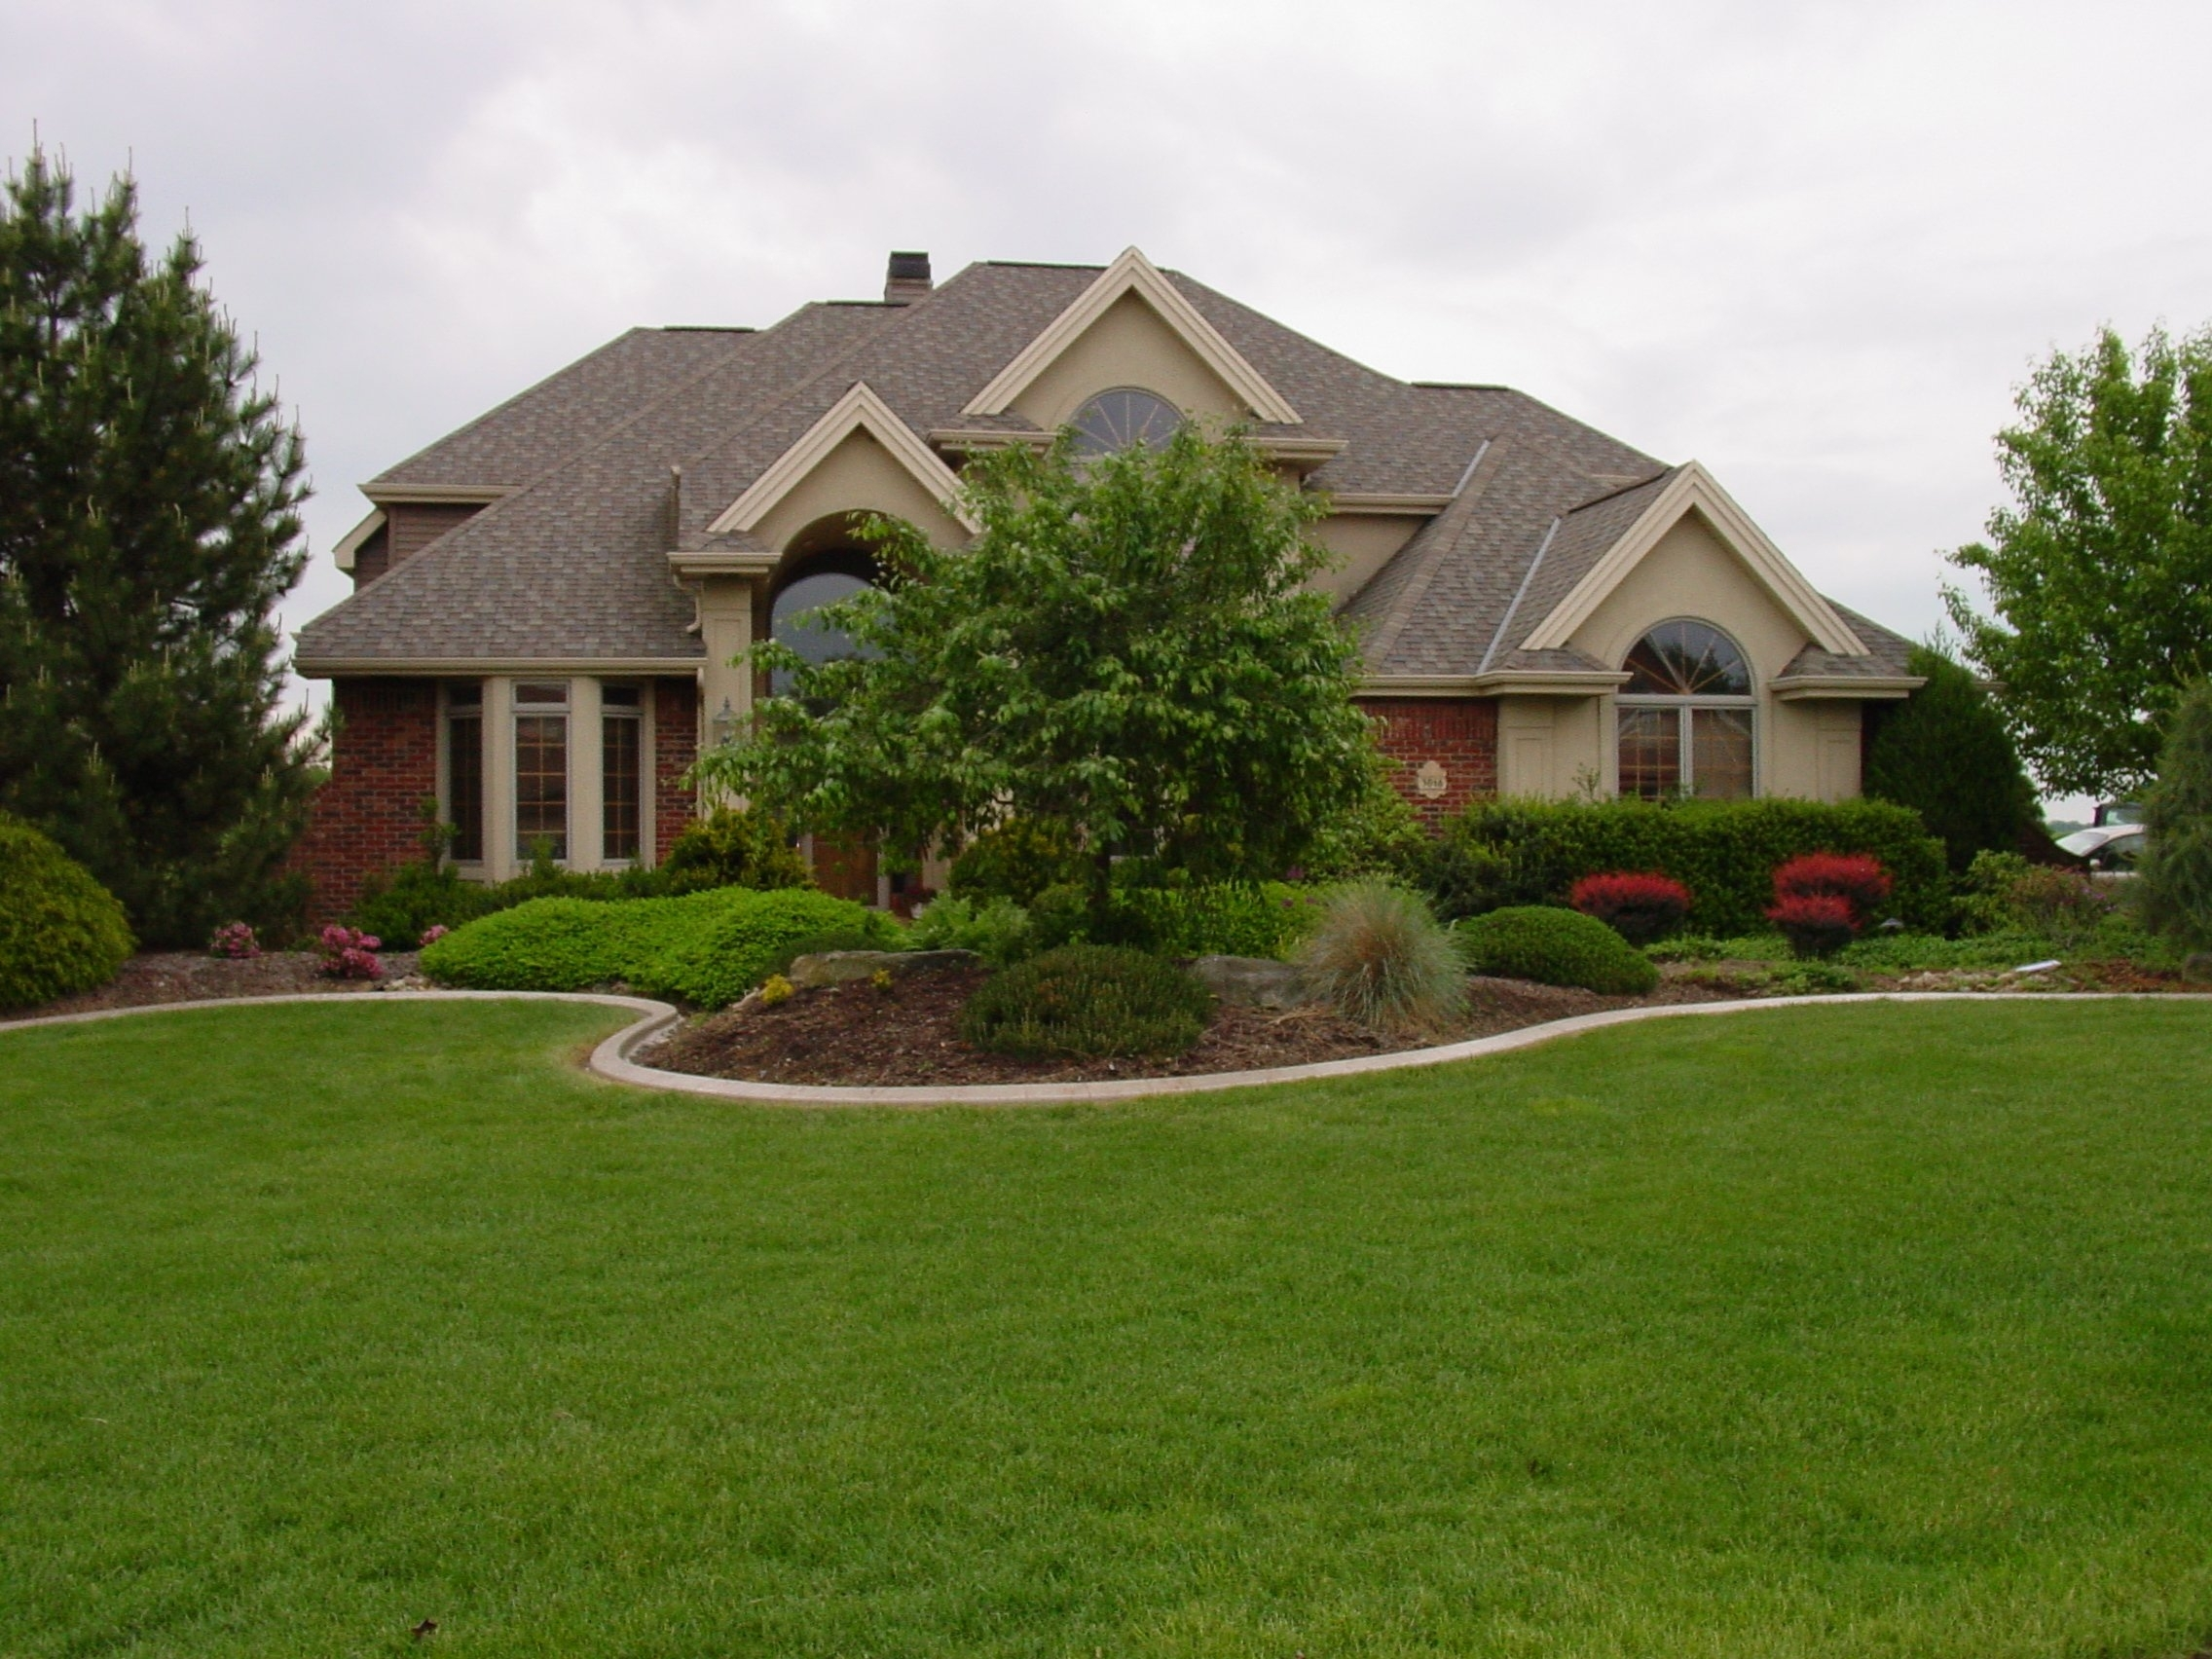 Image of: Curb Appeal Landscaping 7239 With Curb Appeal Landscaping Curb Appeal Landscaping Ideas